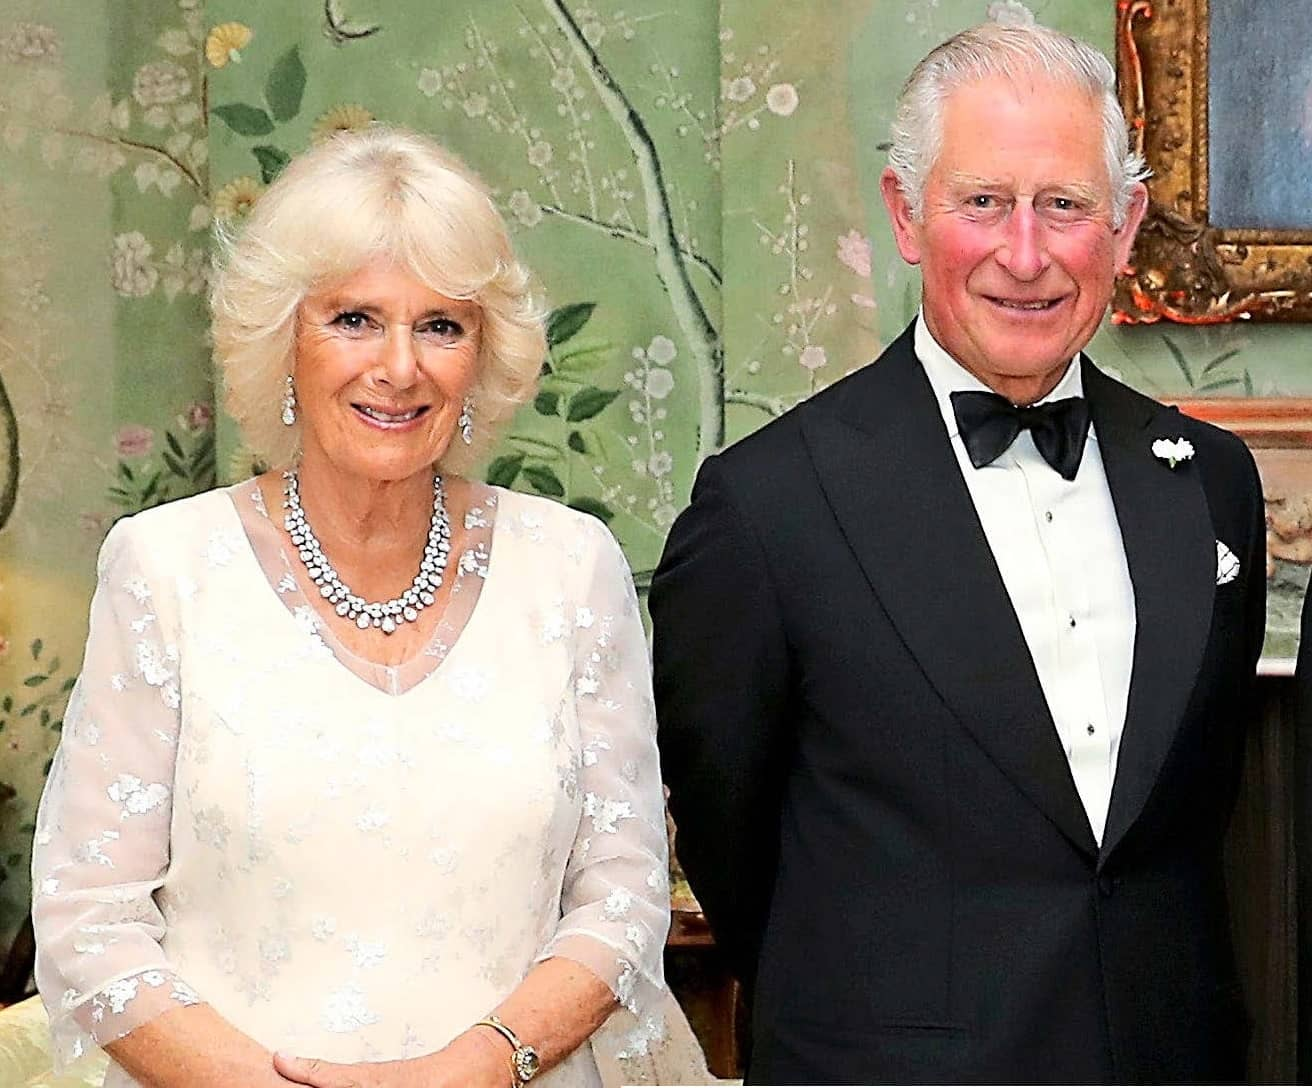 CHARLES & CAMILLA RENEW THEIR VOWS